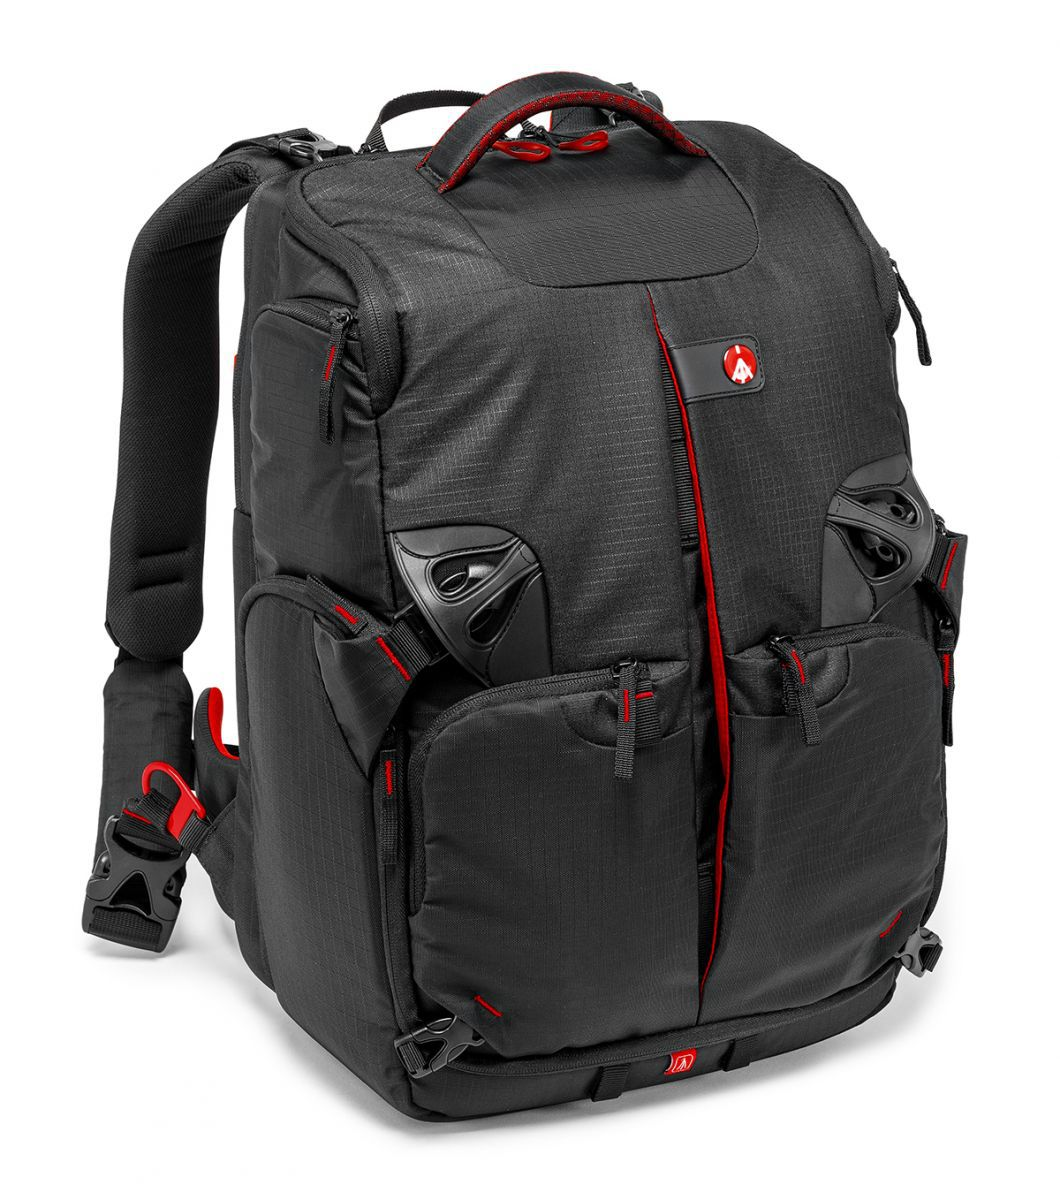 Manfrotto gamme Pro Light, sac à dos photo